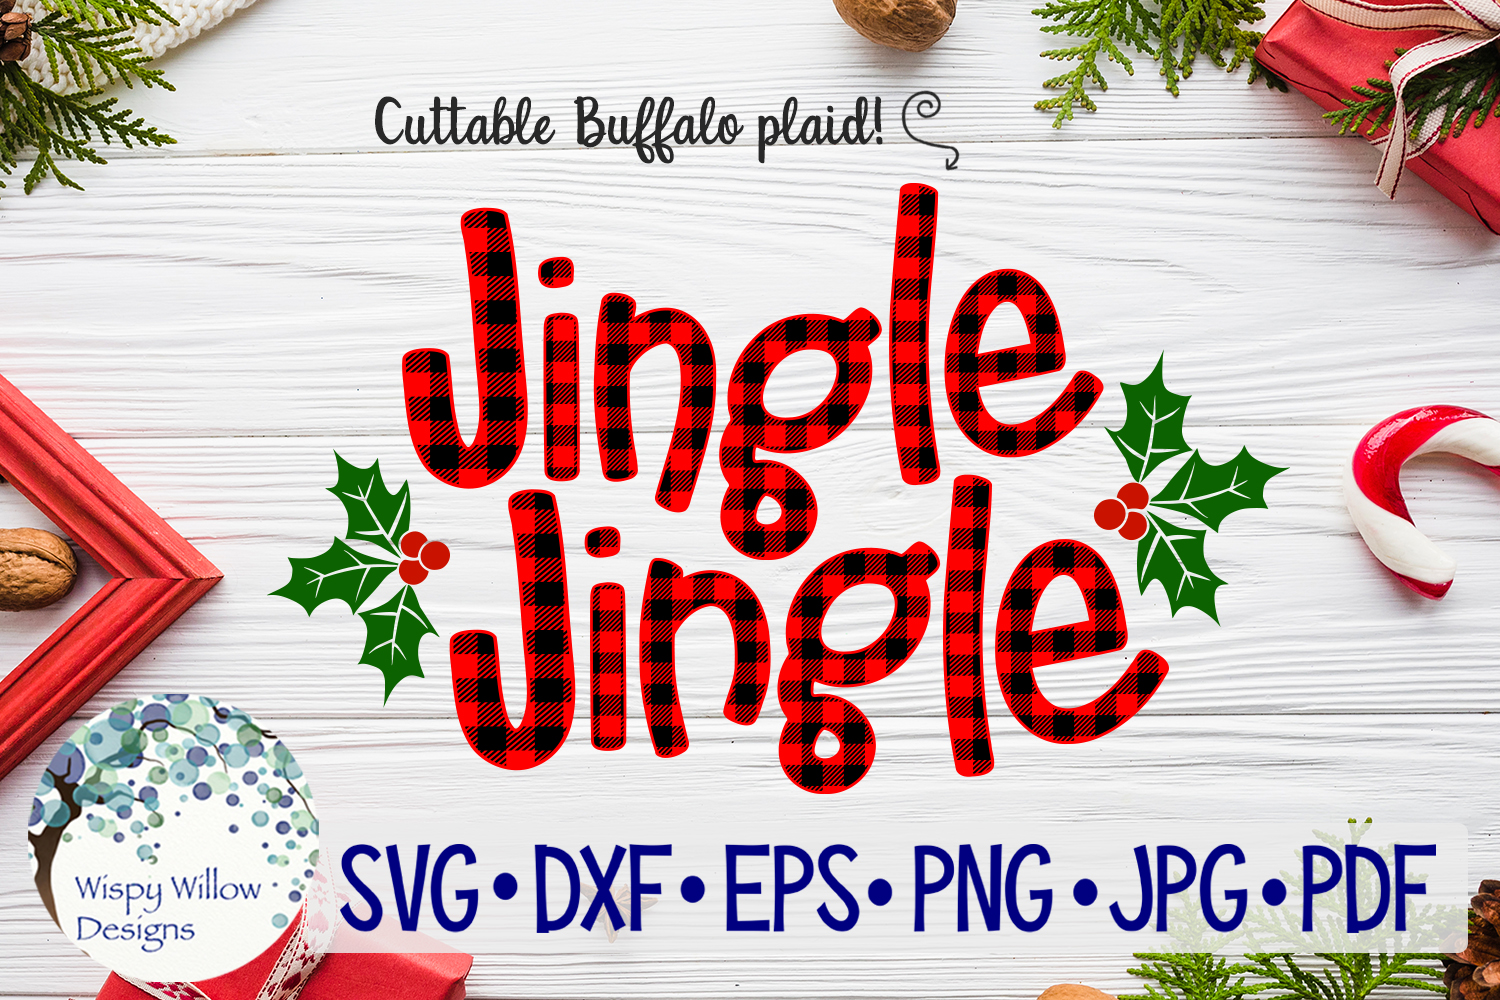 Download Free Jingle Jingle Plaid Svg Christmas Graphic By Wispywillowdesigns for Cricut Explore, Silhouette and other cutting machines.